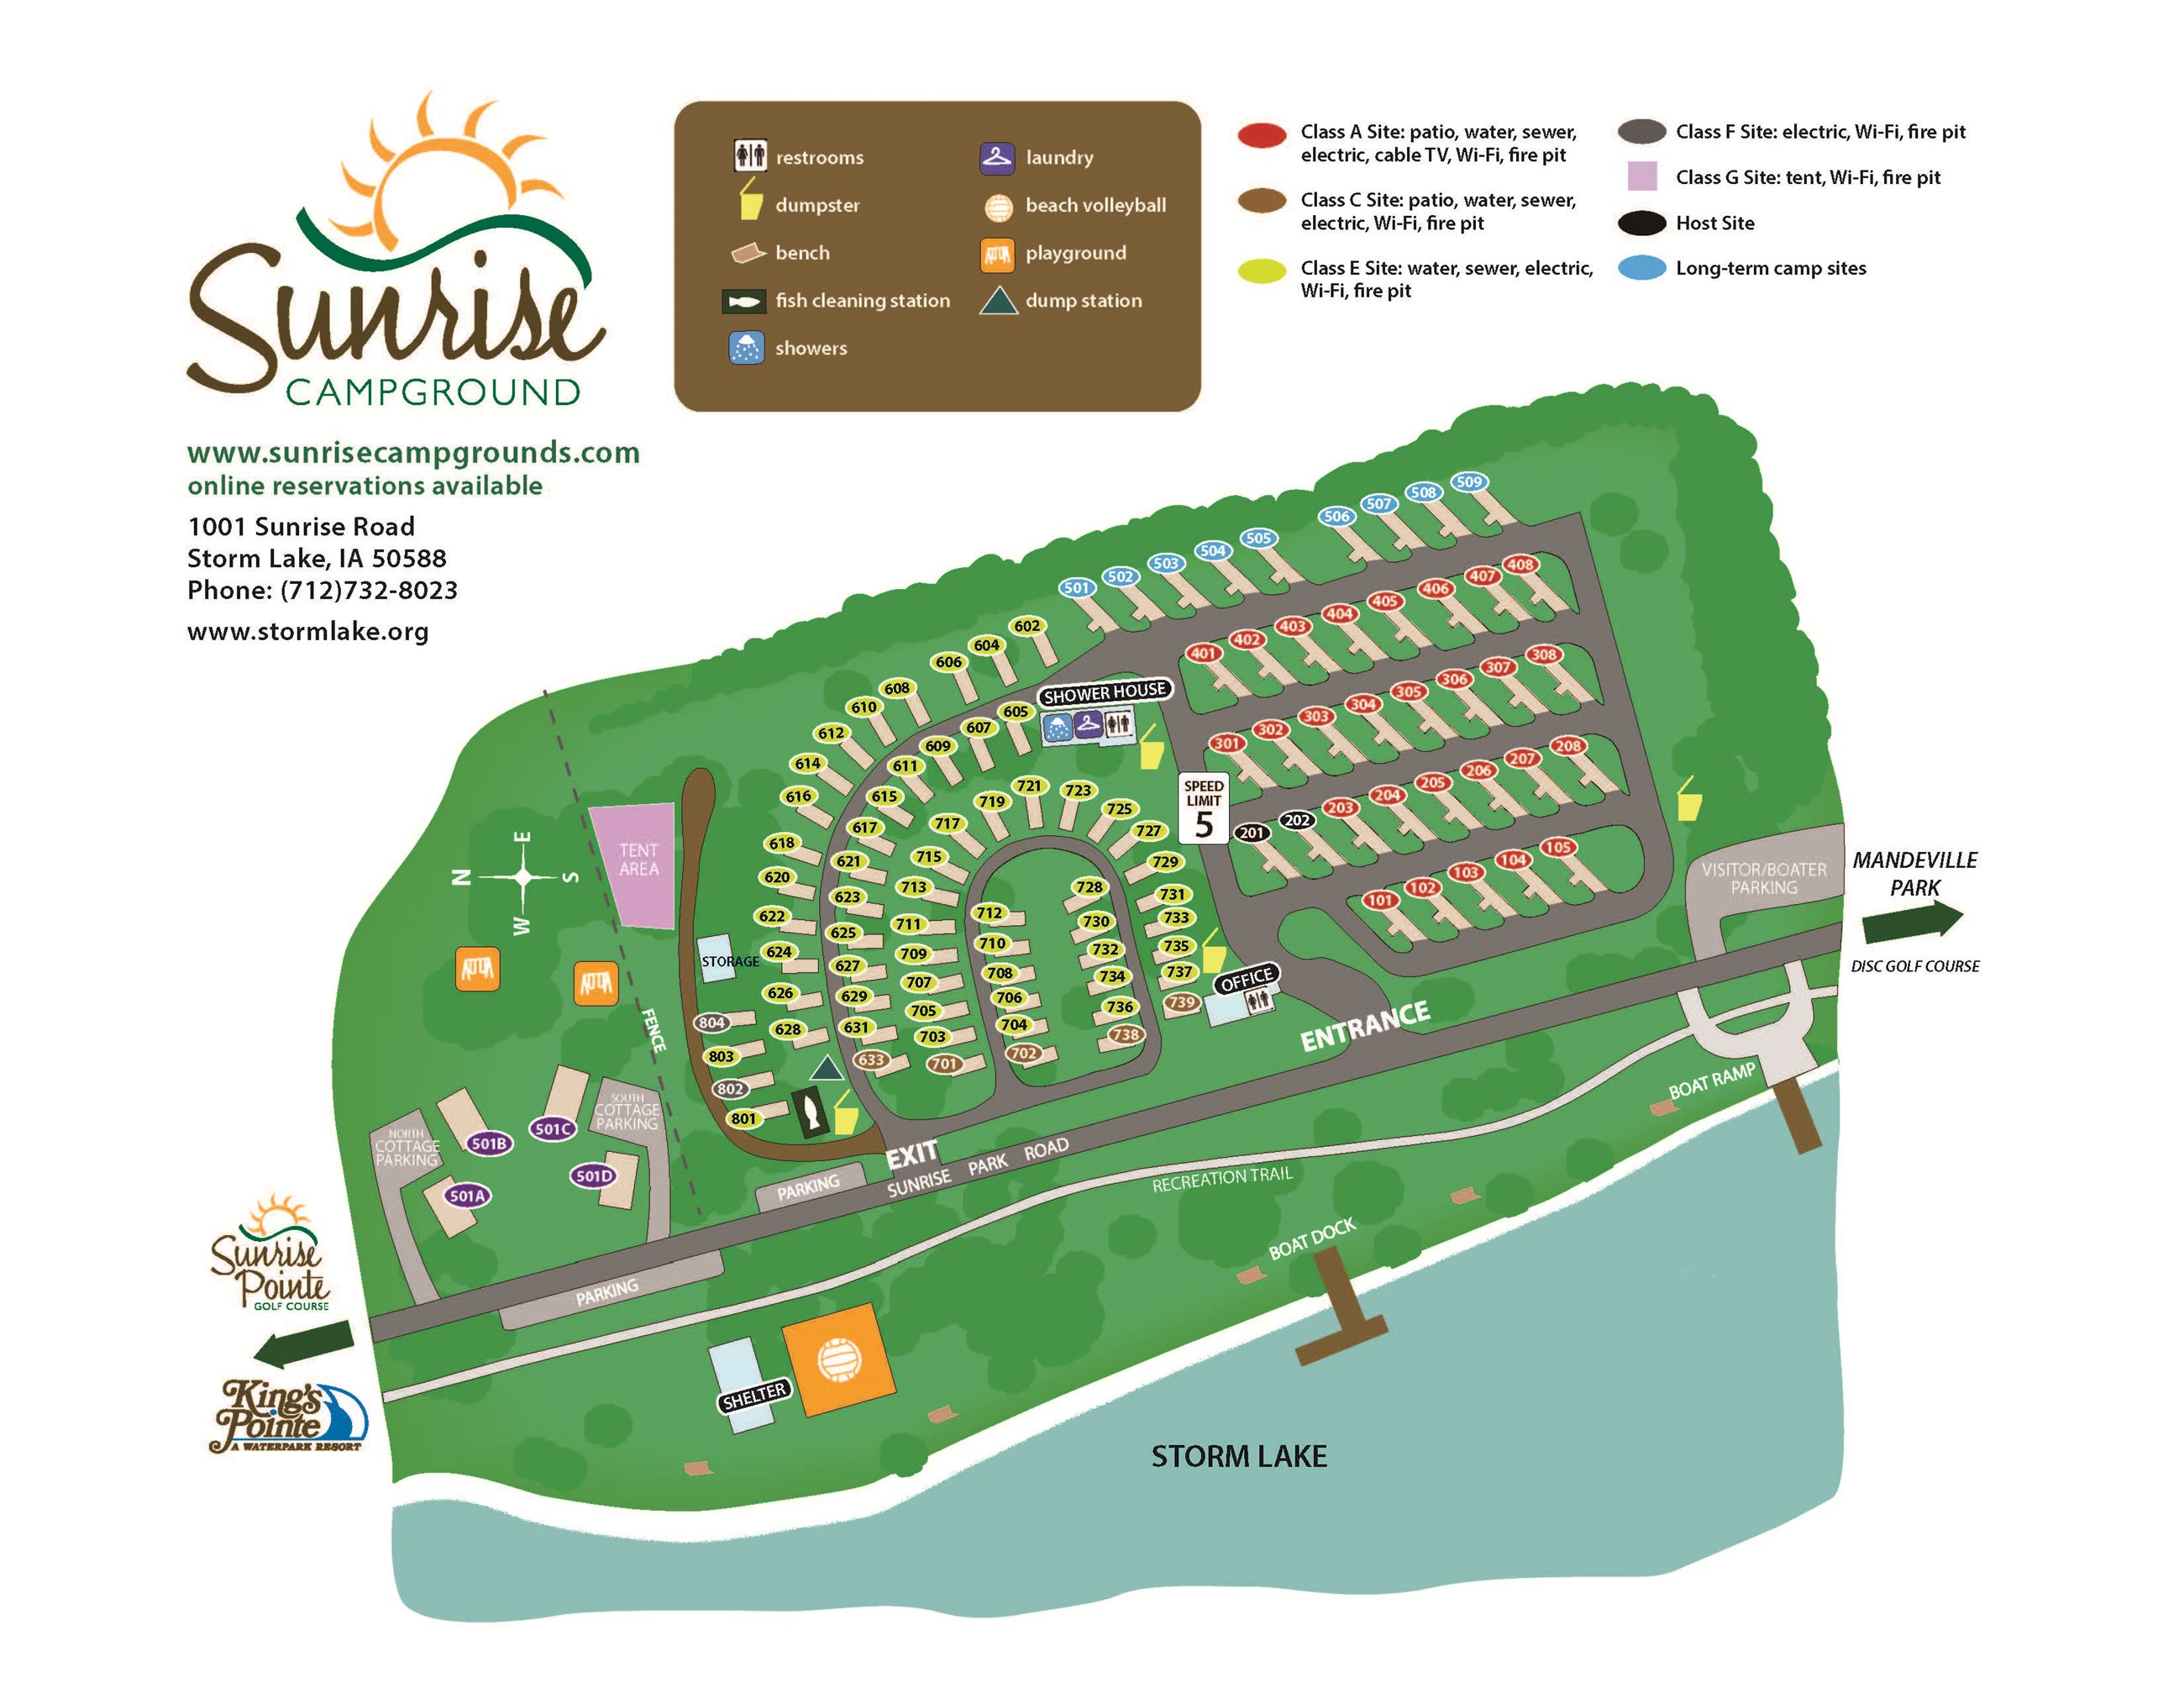 Sunrise Campground Map 2019